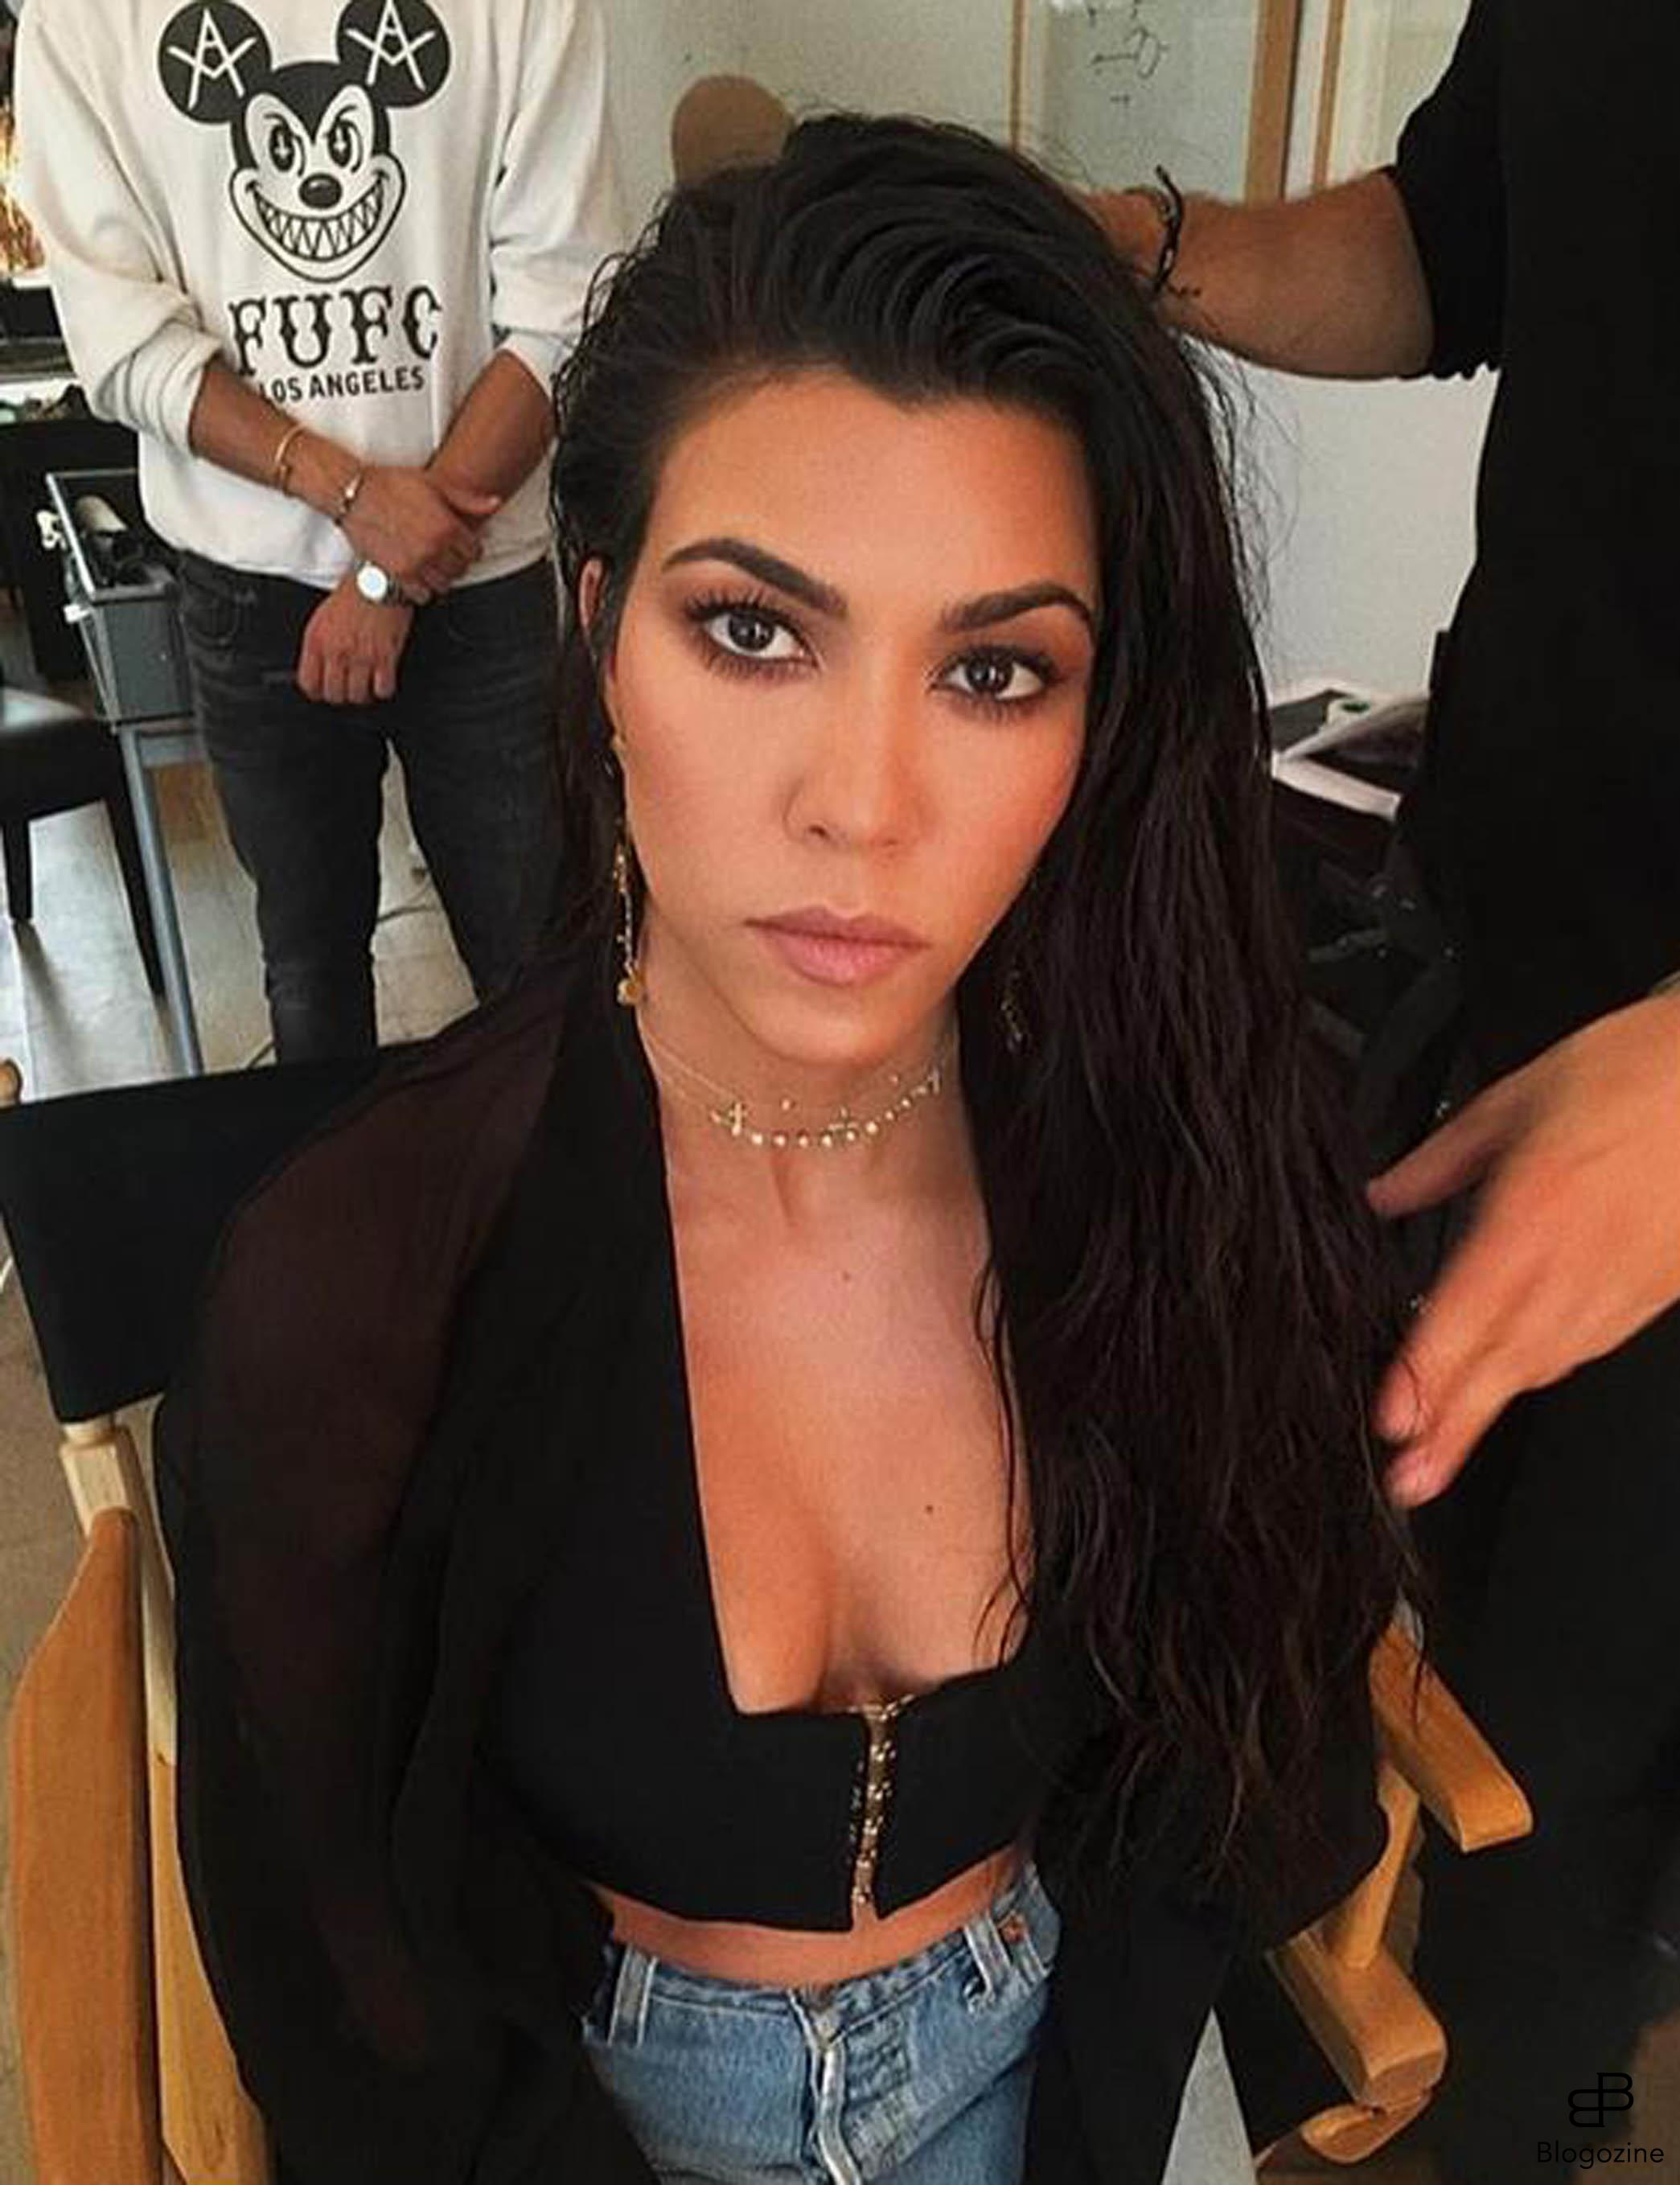 6268786 3-10-2016 Celebrity Selfies Pictured: Kourtney Kardashian PLANET PHOTOS www.planetphotos.co.uk info@planetphotos.co.uk +44 (0)20 8883 1438 DISTR. STELLA PICTURES